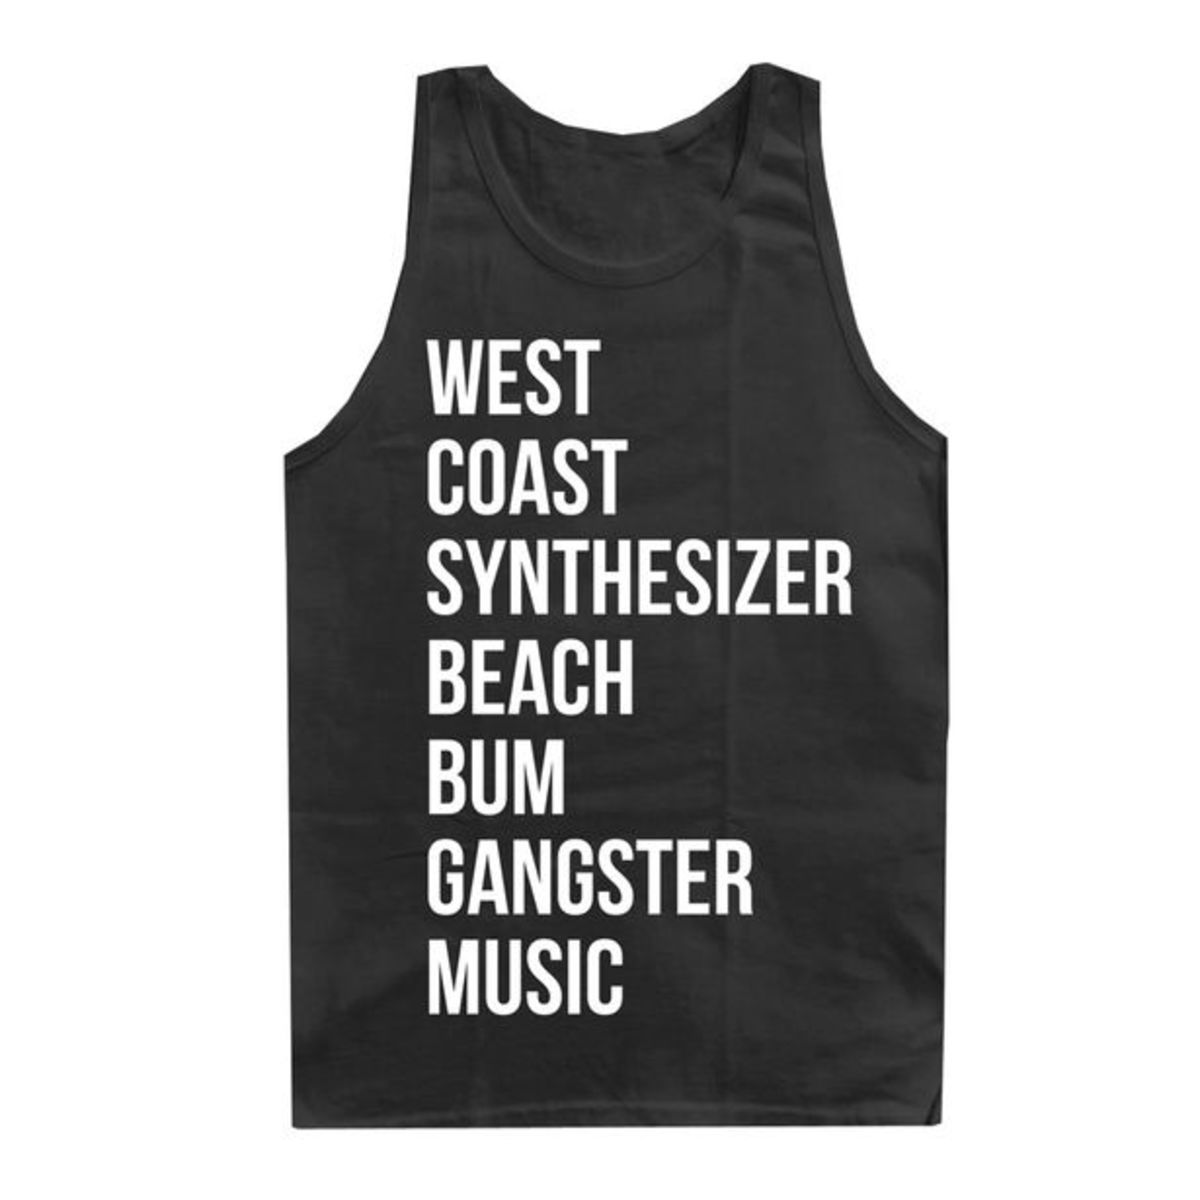 EDM Culture: Limited Edition Westcoastsynthesizerbeachbumgangstermusic Tank Top from King Fantastic